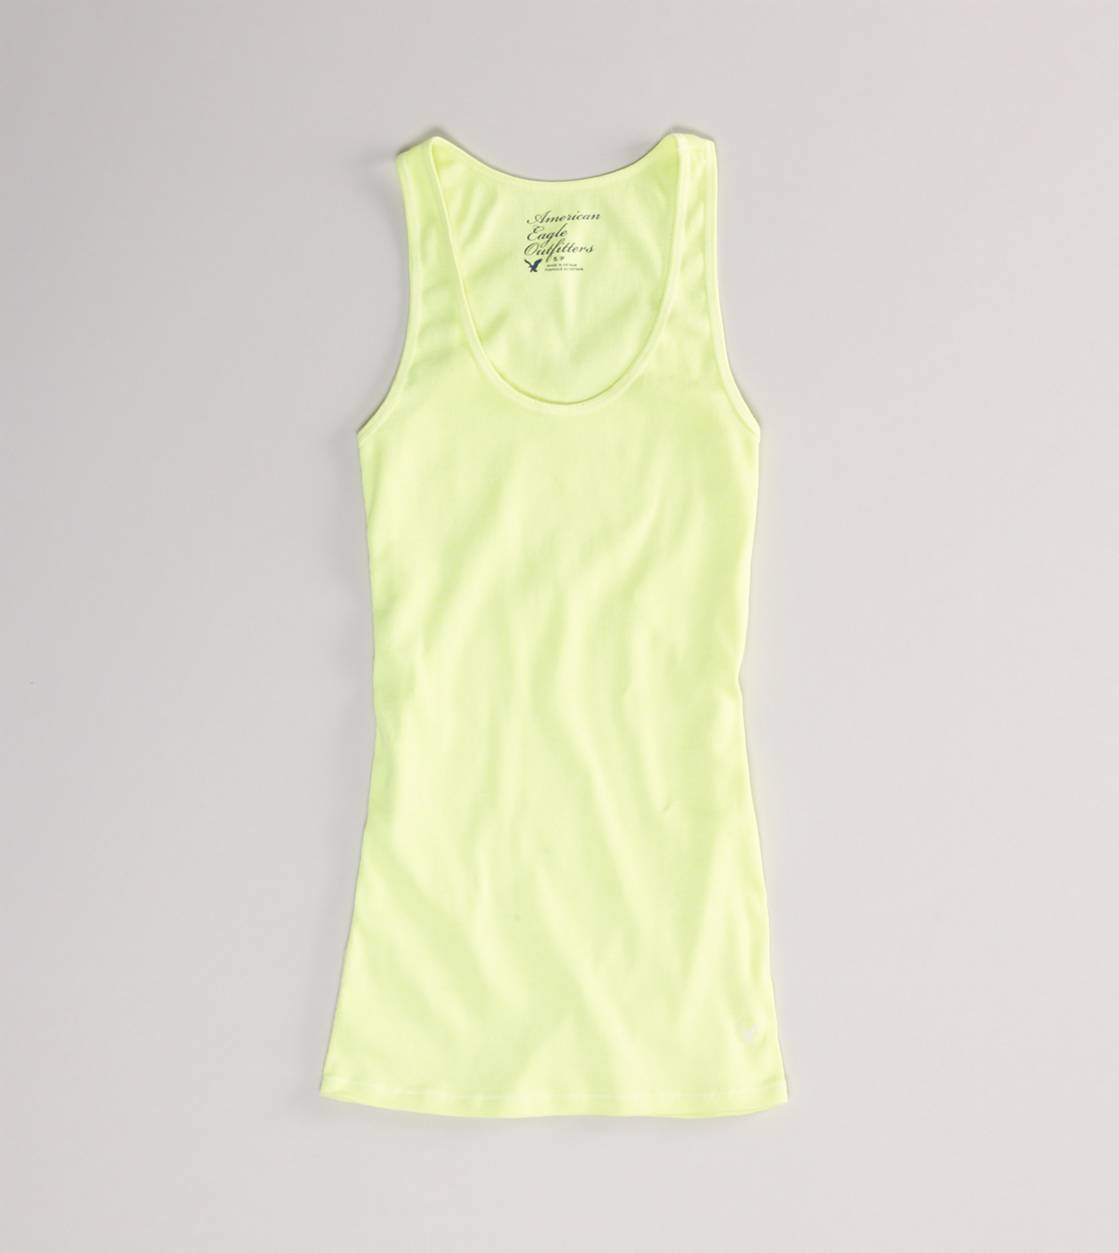 Neon Lemon Lime 2